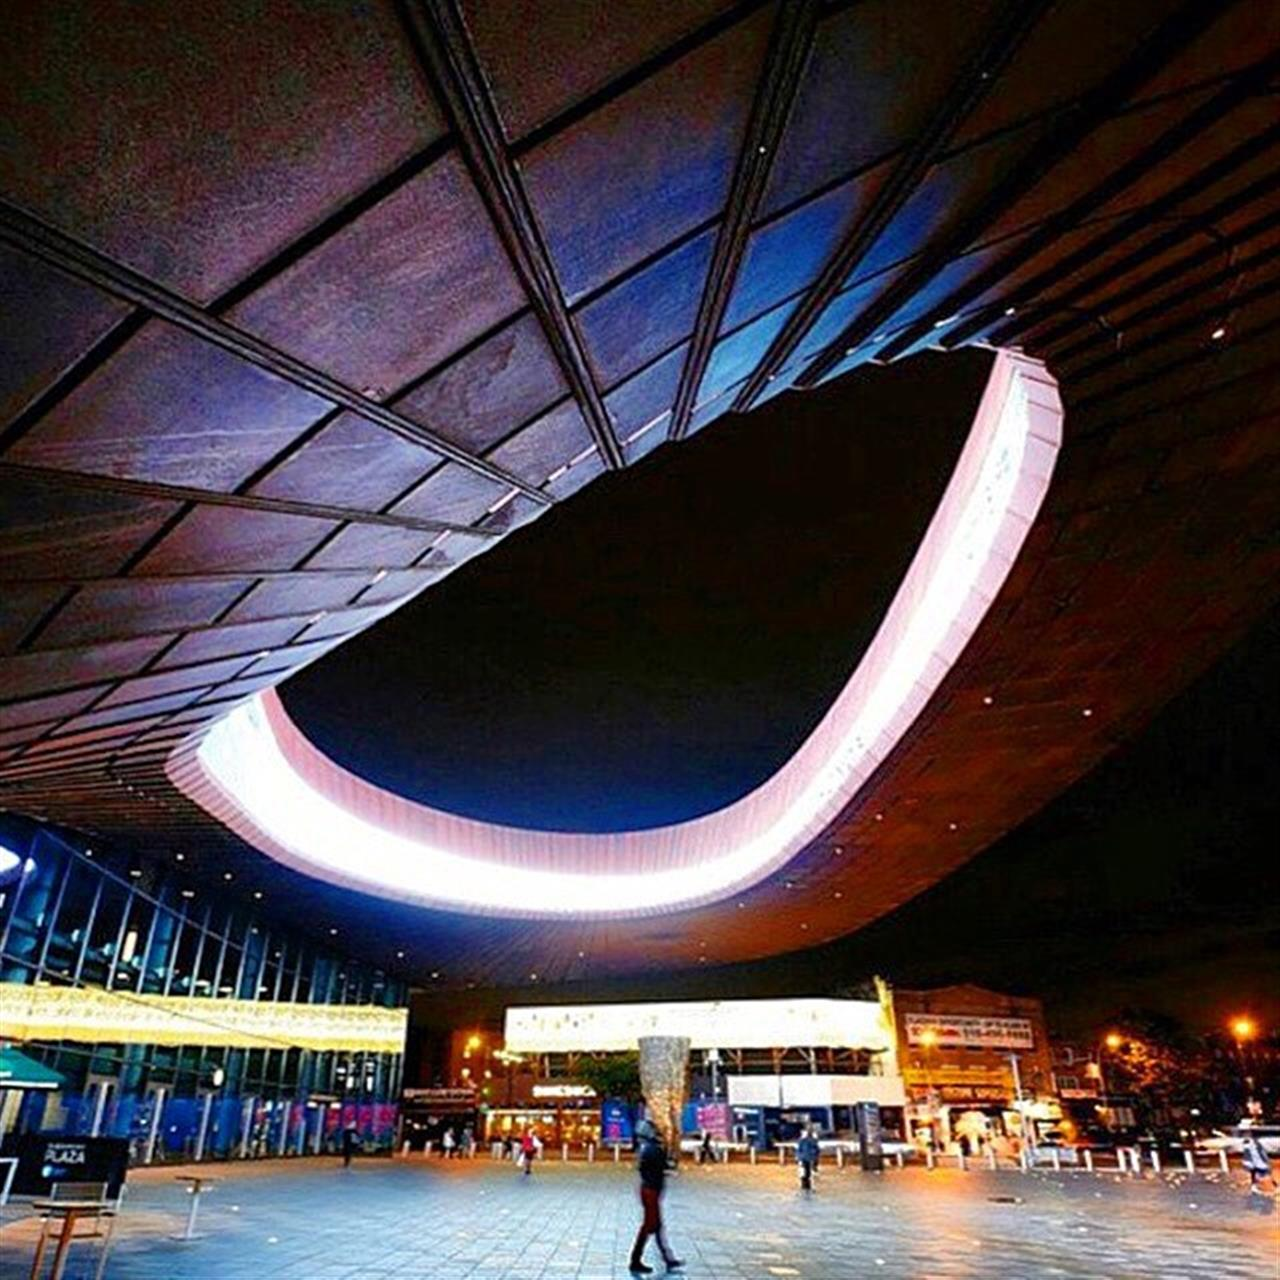 Close Encounters at the #BarclaysCenter. (Photo from @shoparchitects)